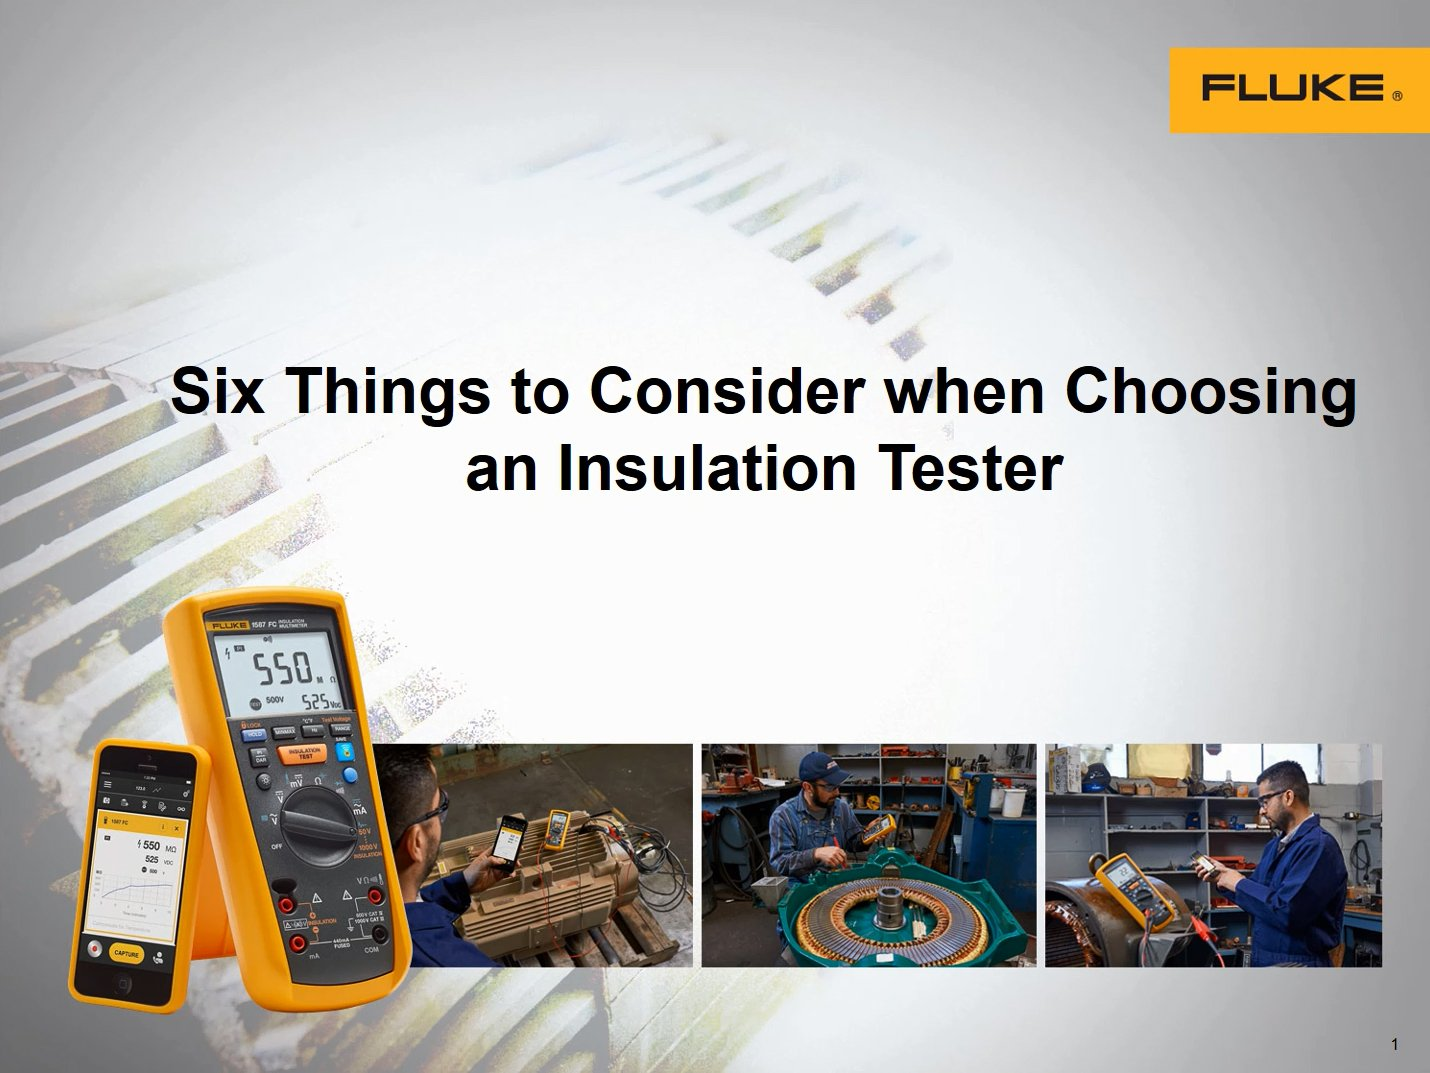 Fluke Training Library Demos Videos App Notes La Detailed Auto Topics Tips On Automotive Electrical Testing